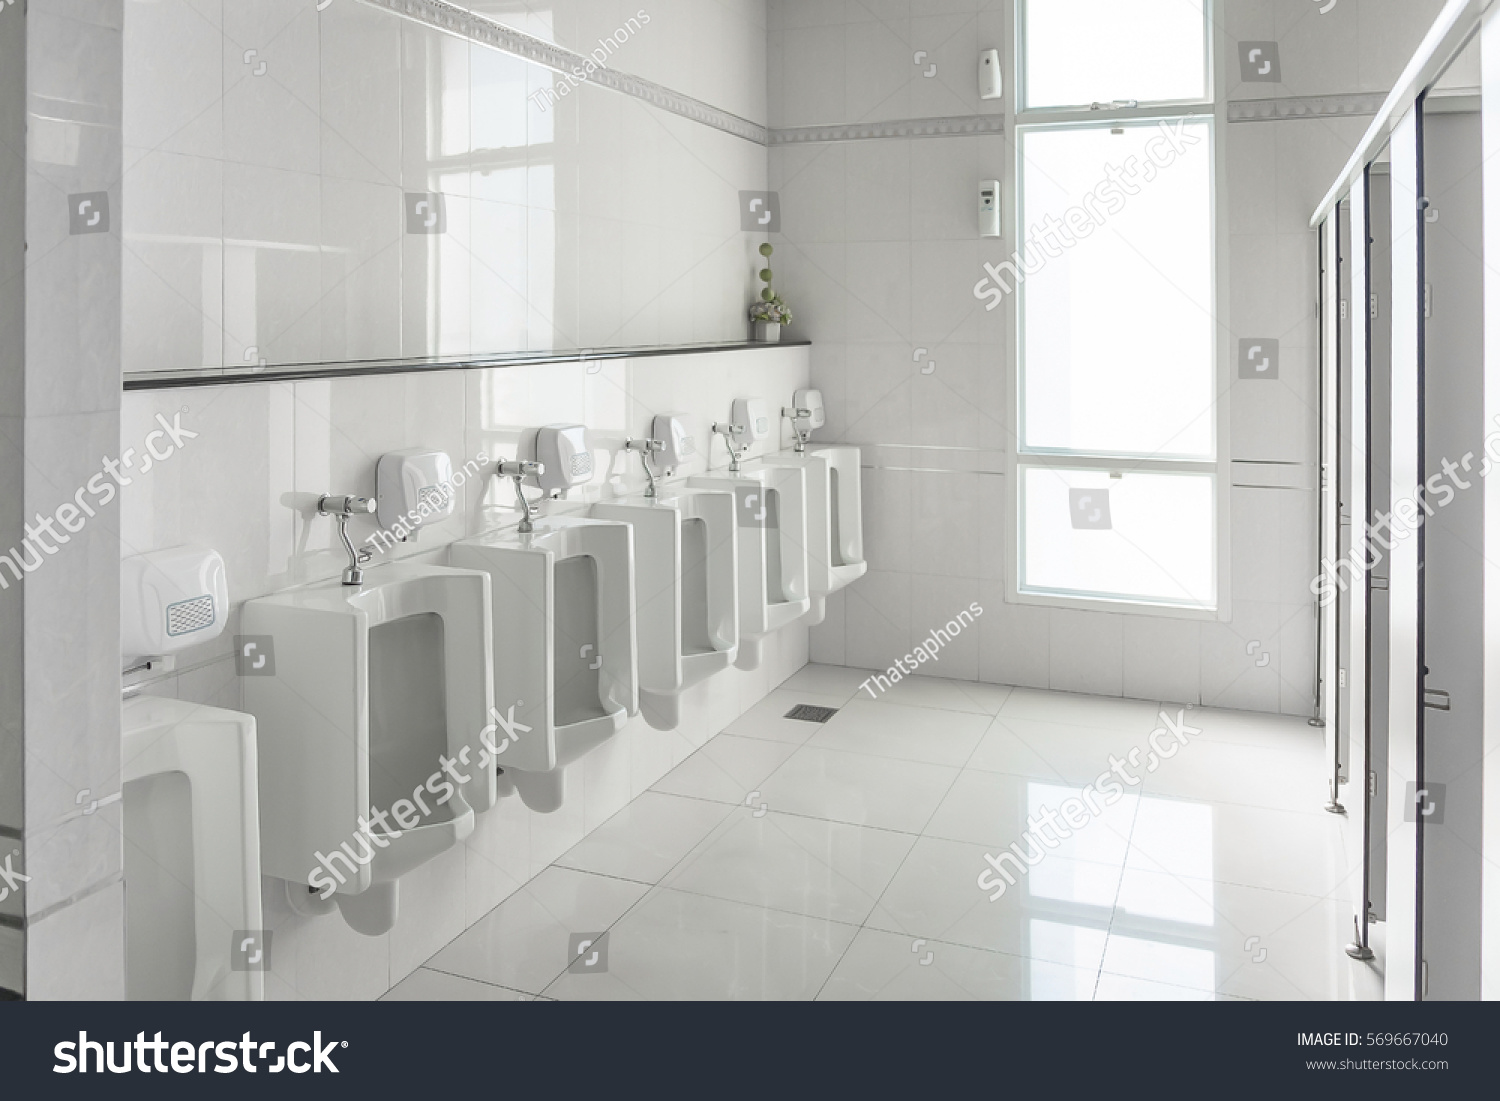 White Urinals In Clean Men Public Toilet Room Empty With Big Window And Light From Outside